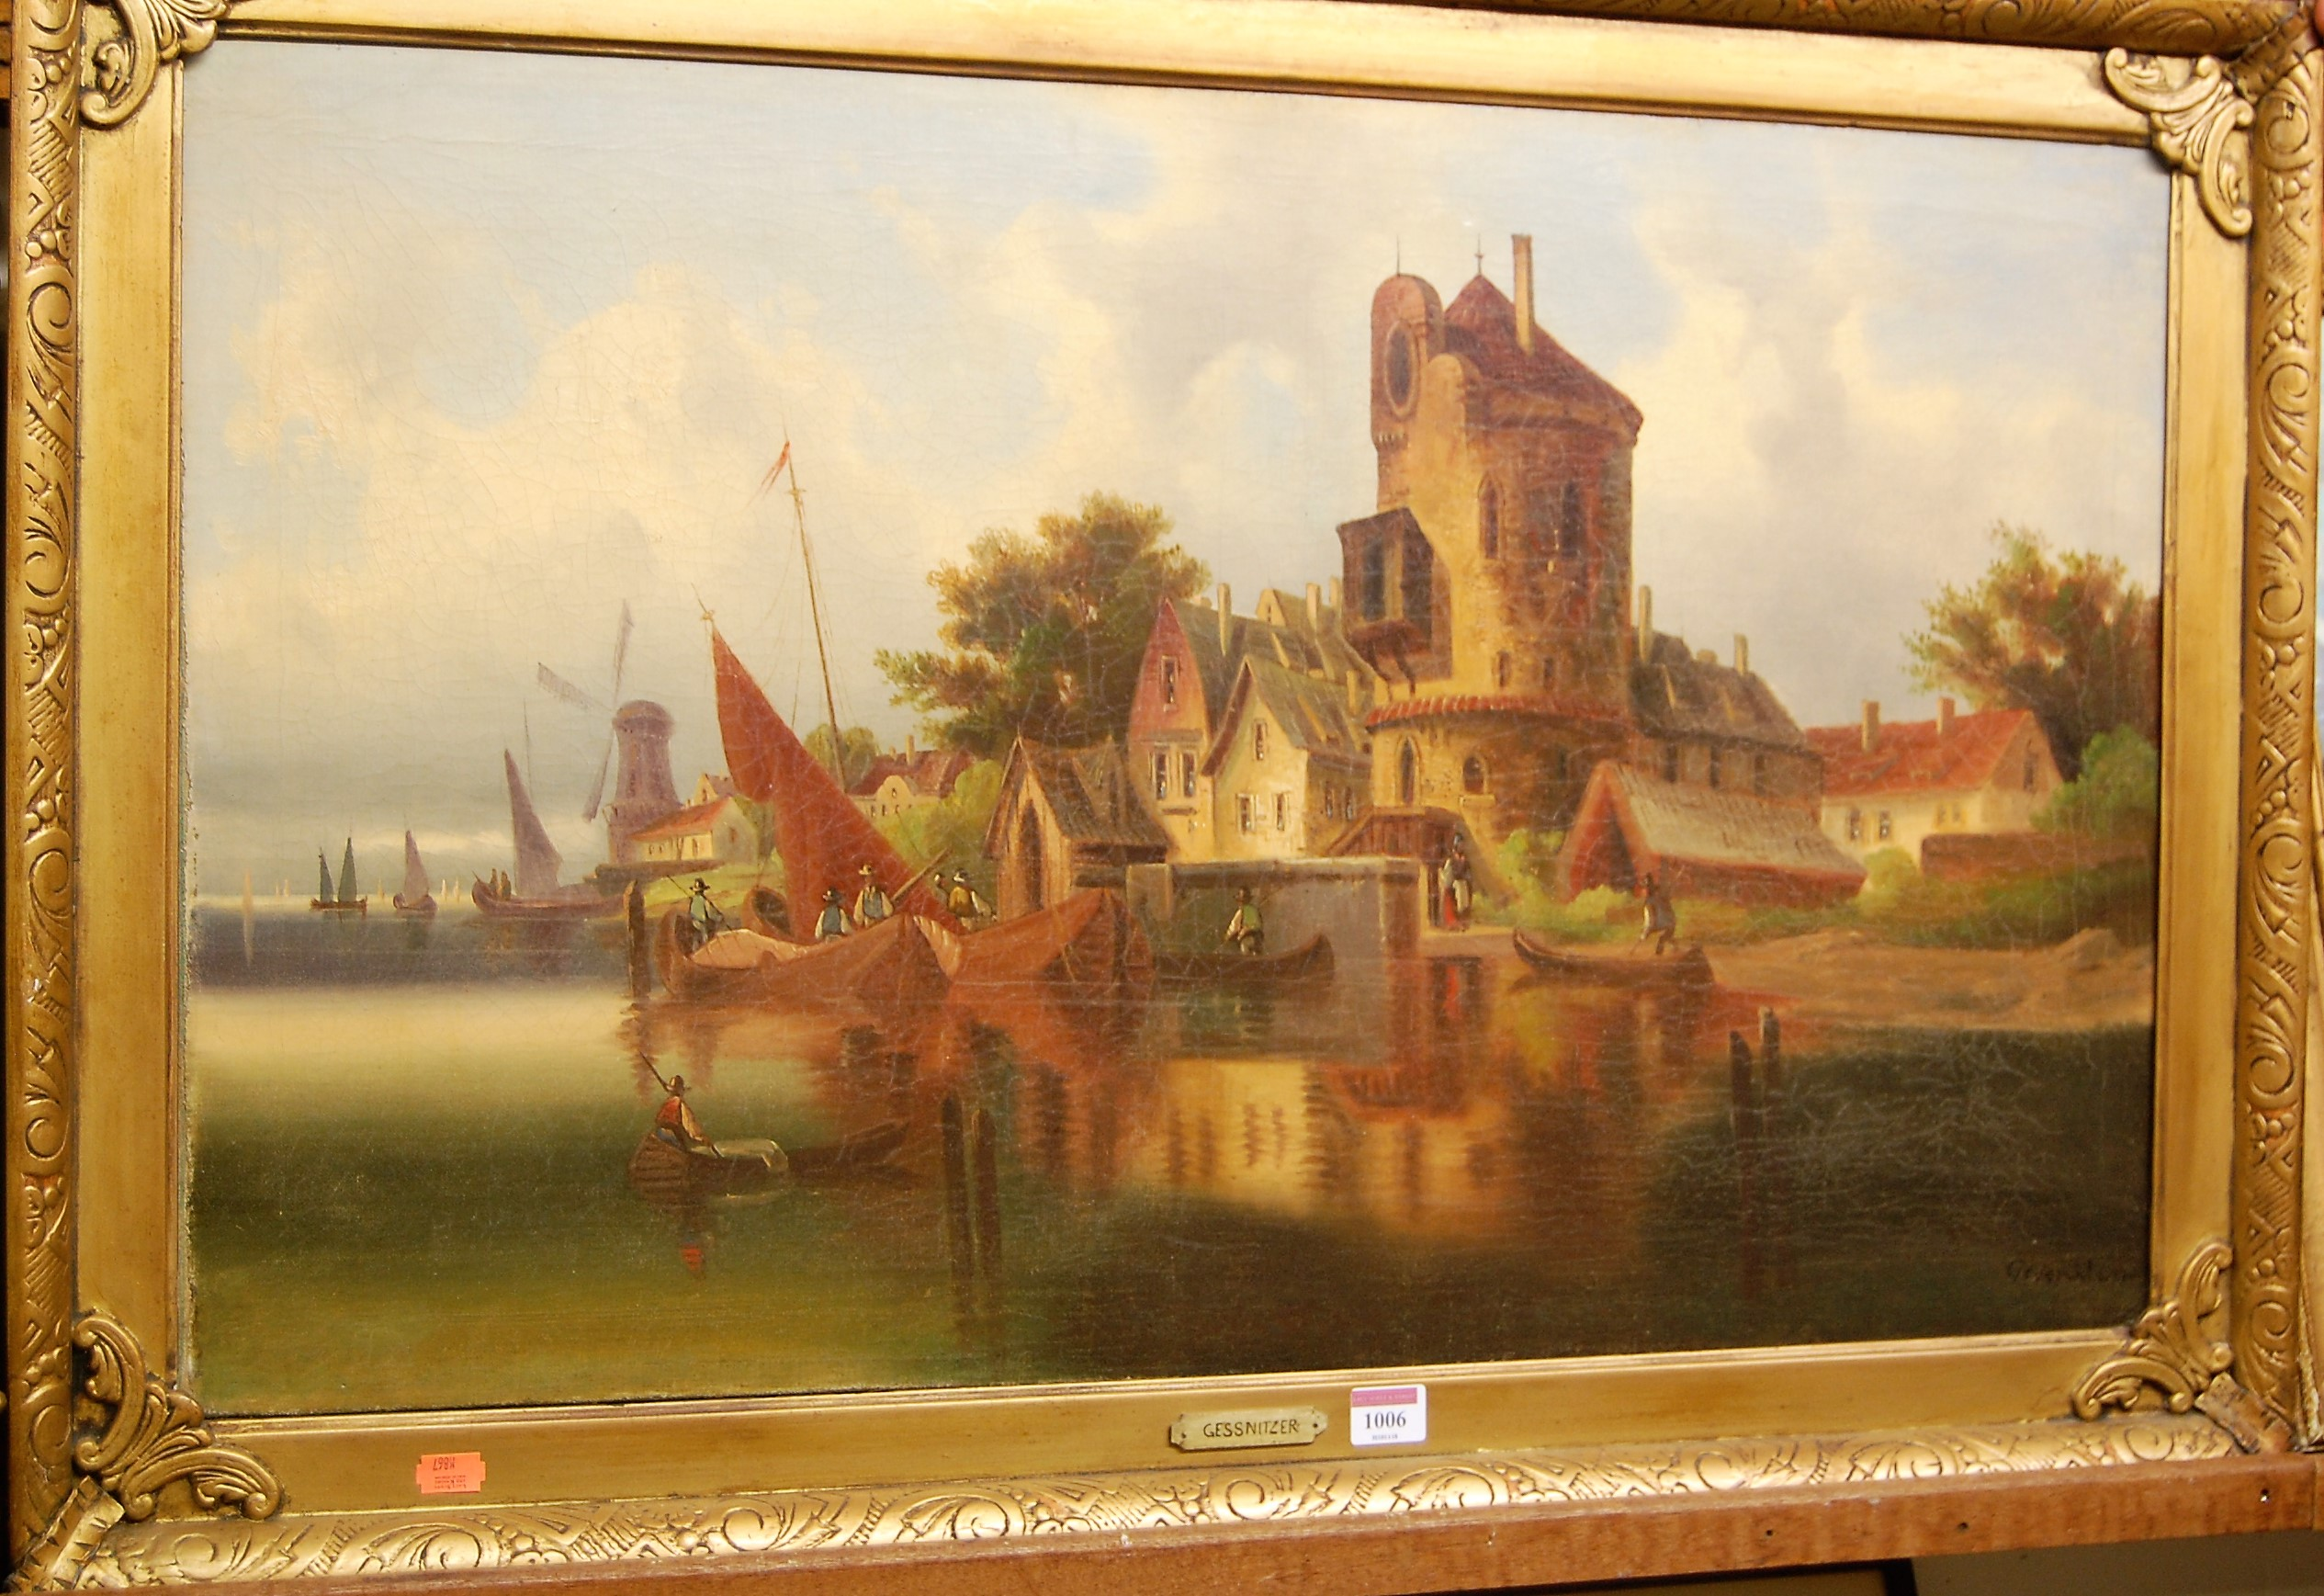 Lot 1006 - Gessnitzer (German late 19th century) - Dutch Canal scene, oil on canvas, signed lower right, 50 x